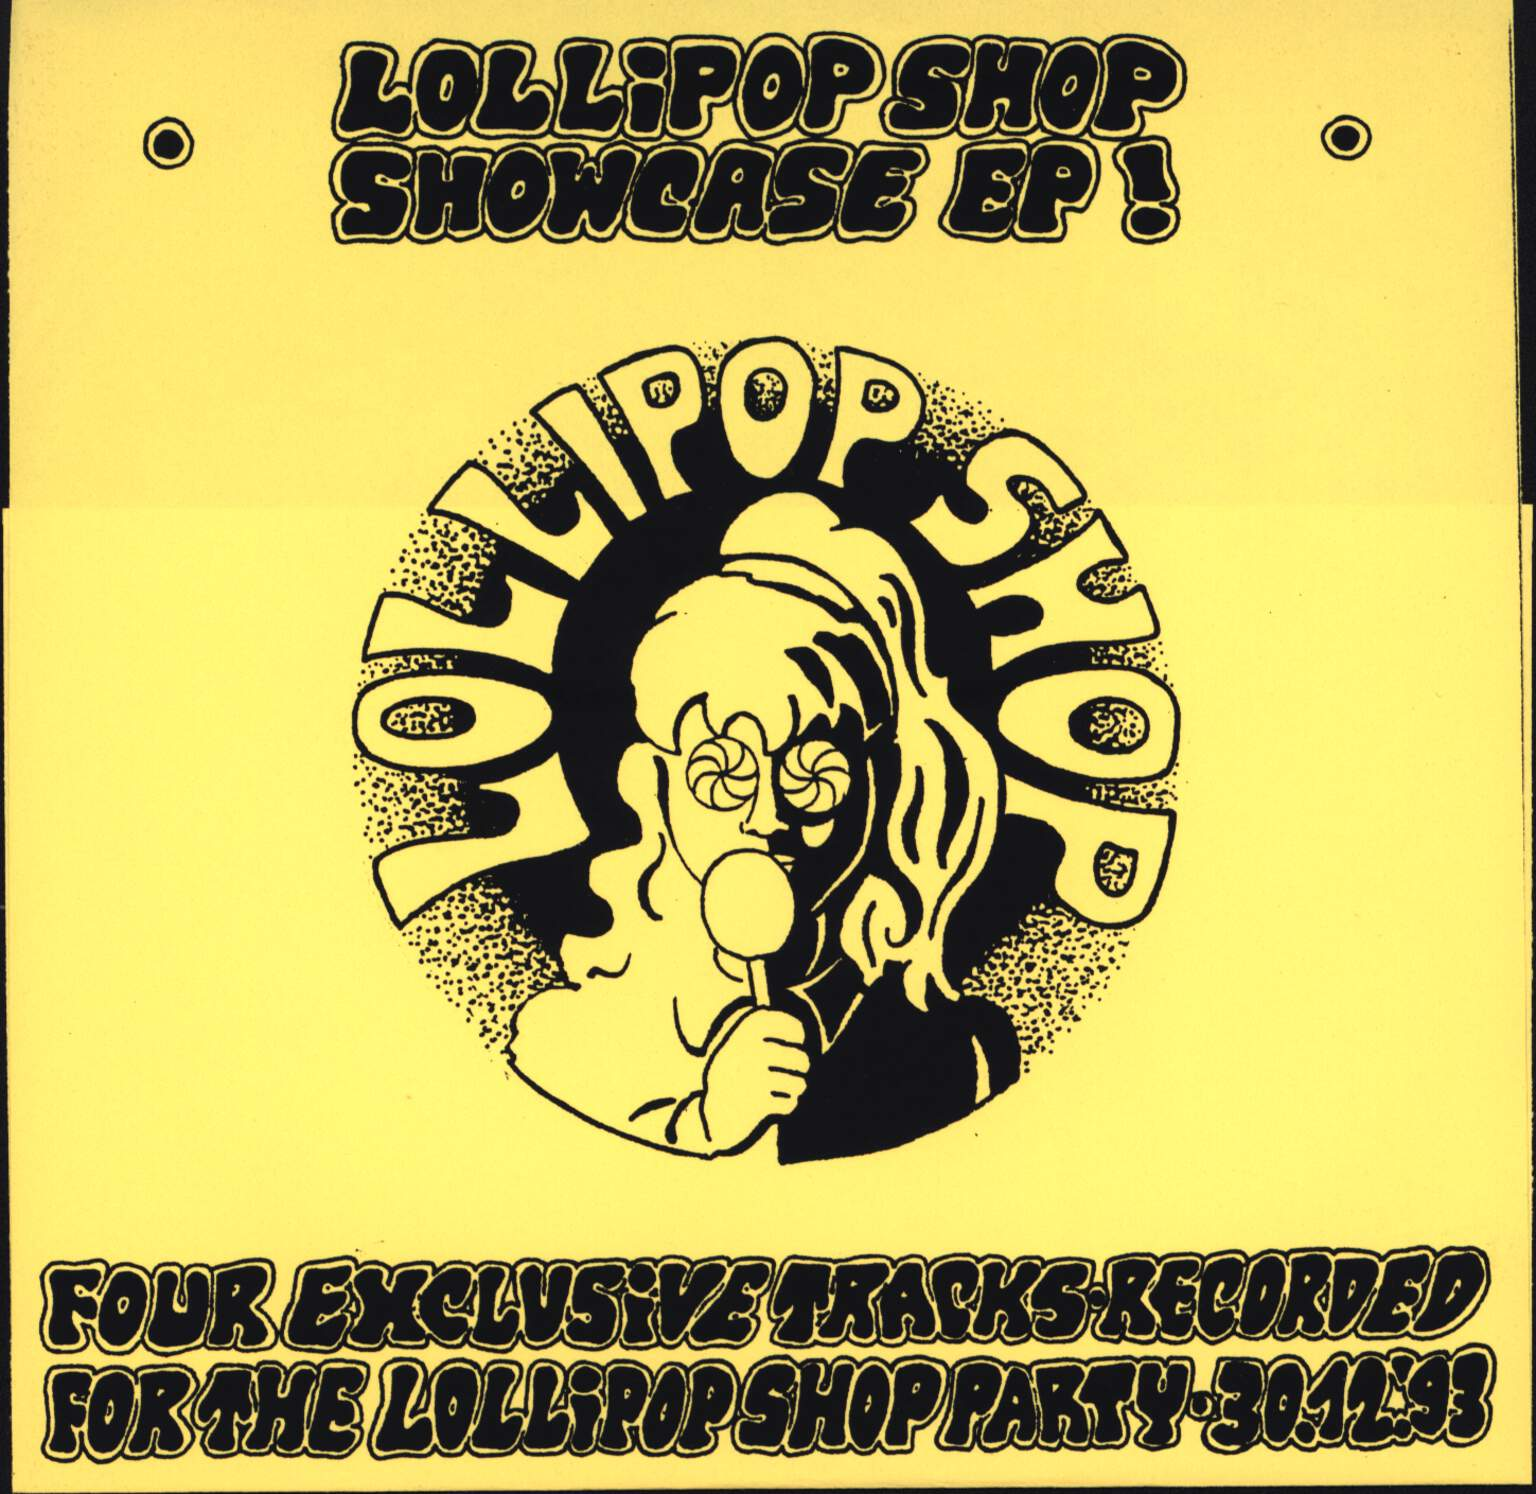 "Various: Lollipop Shop Showcase EP!, 7"" Single (Vinyl)"